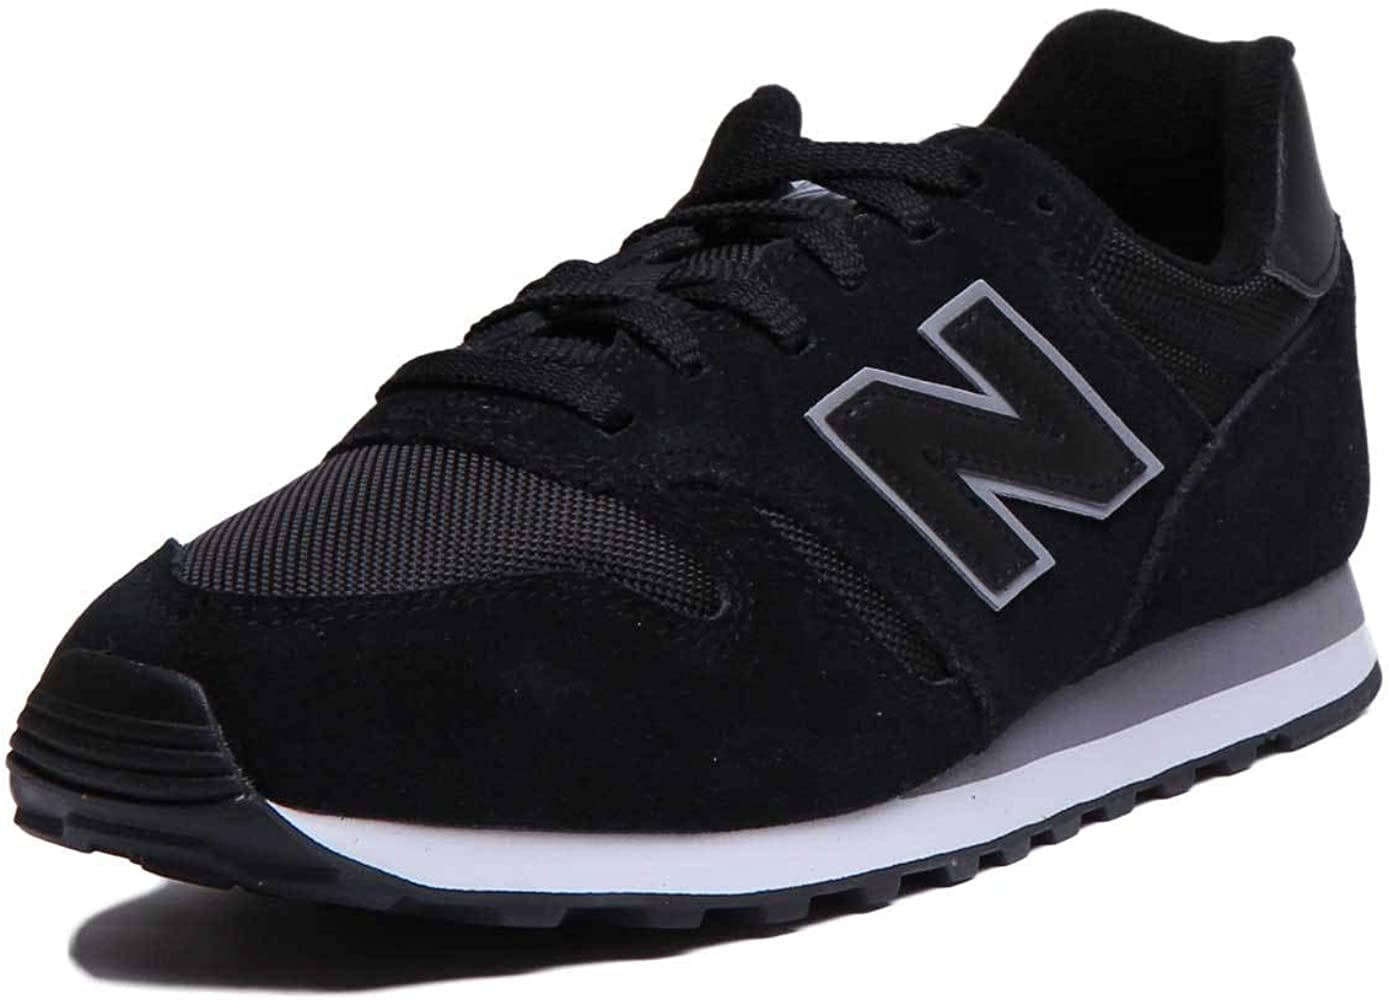 Amazon.com: New Balance Ml373Bbk - Zapatillas de piel de ...